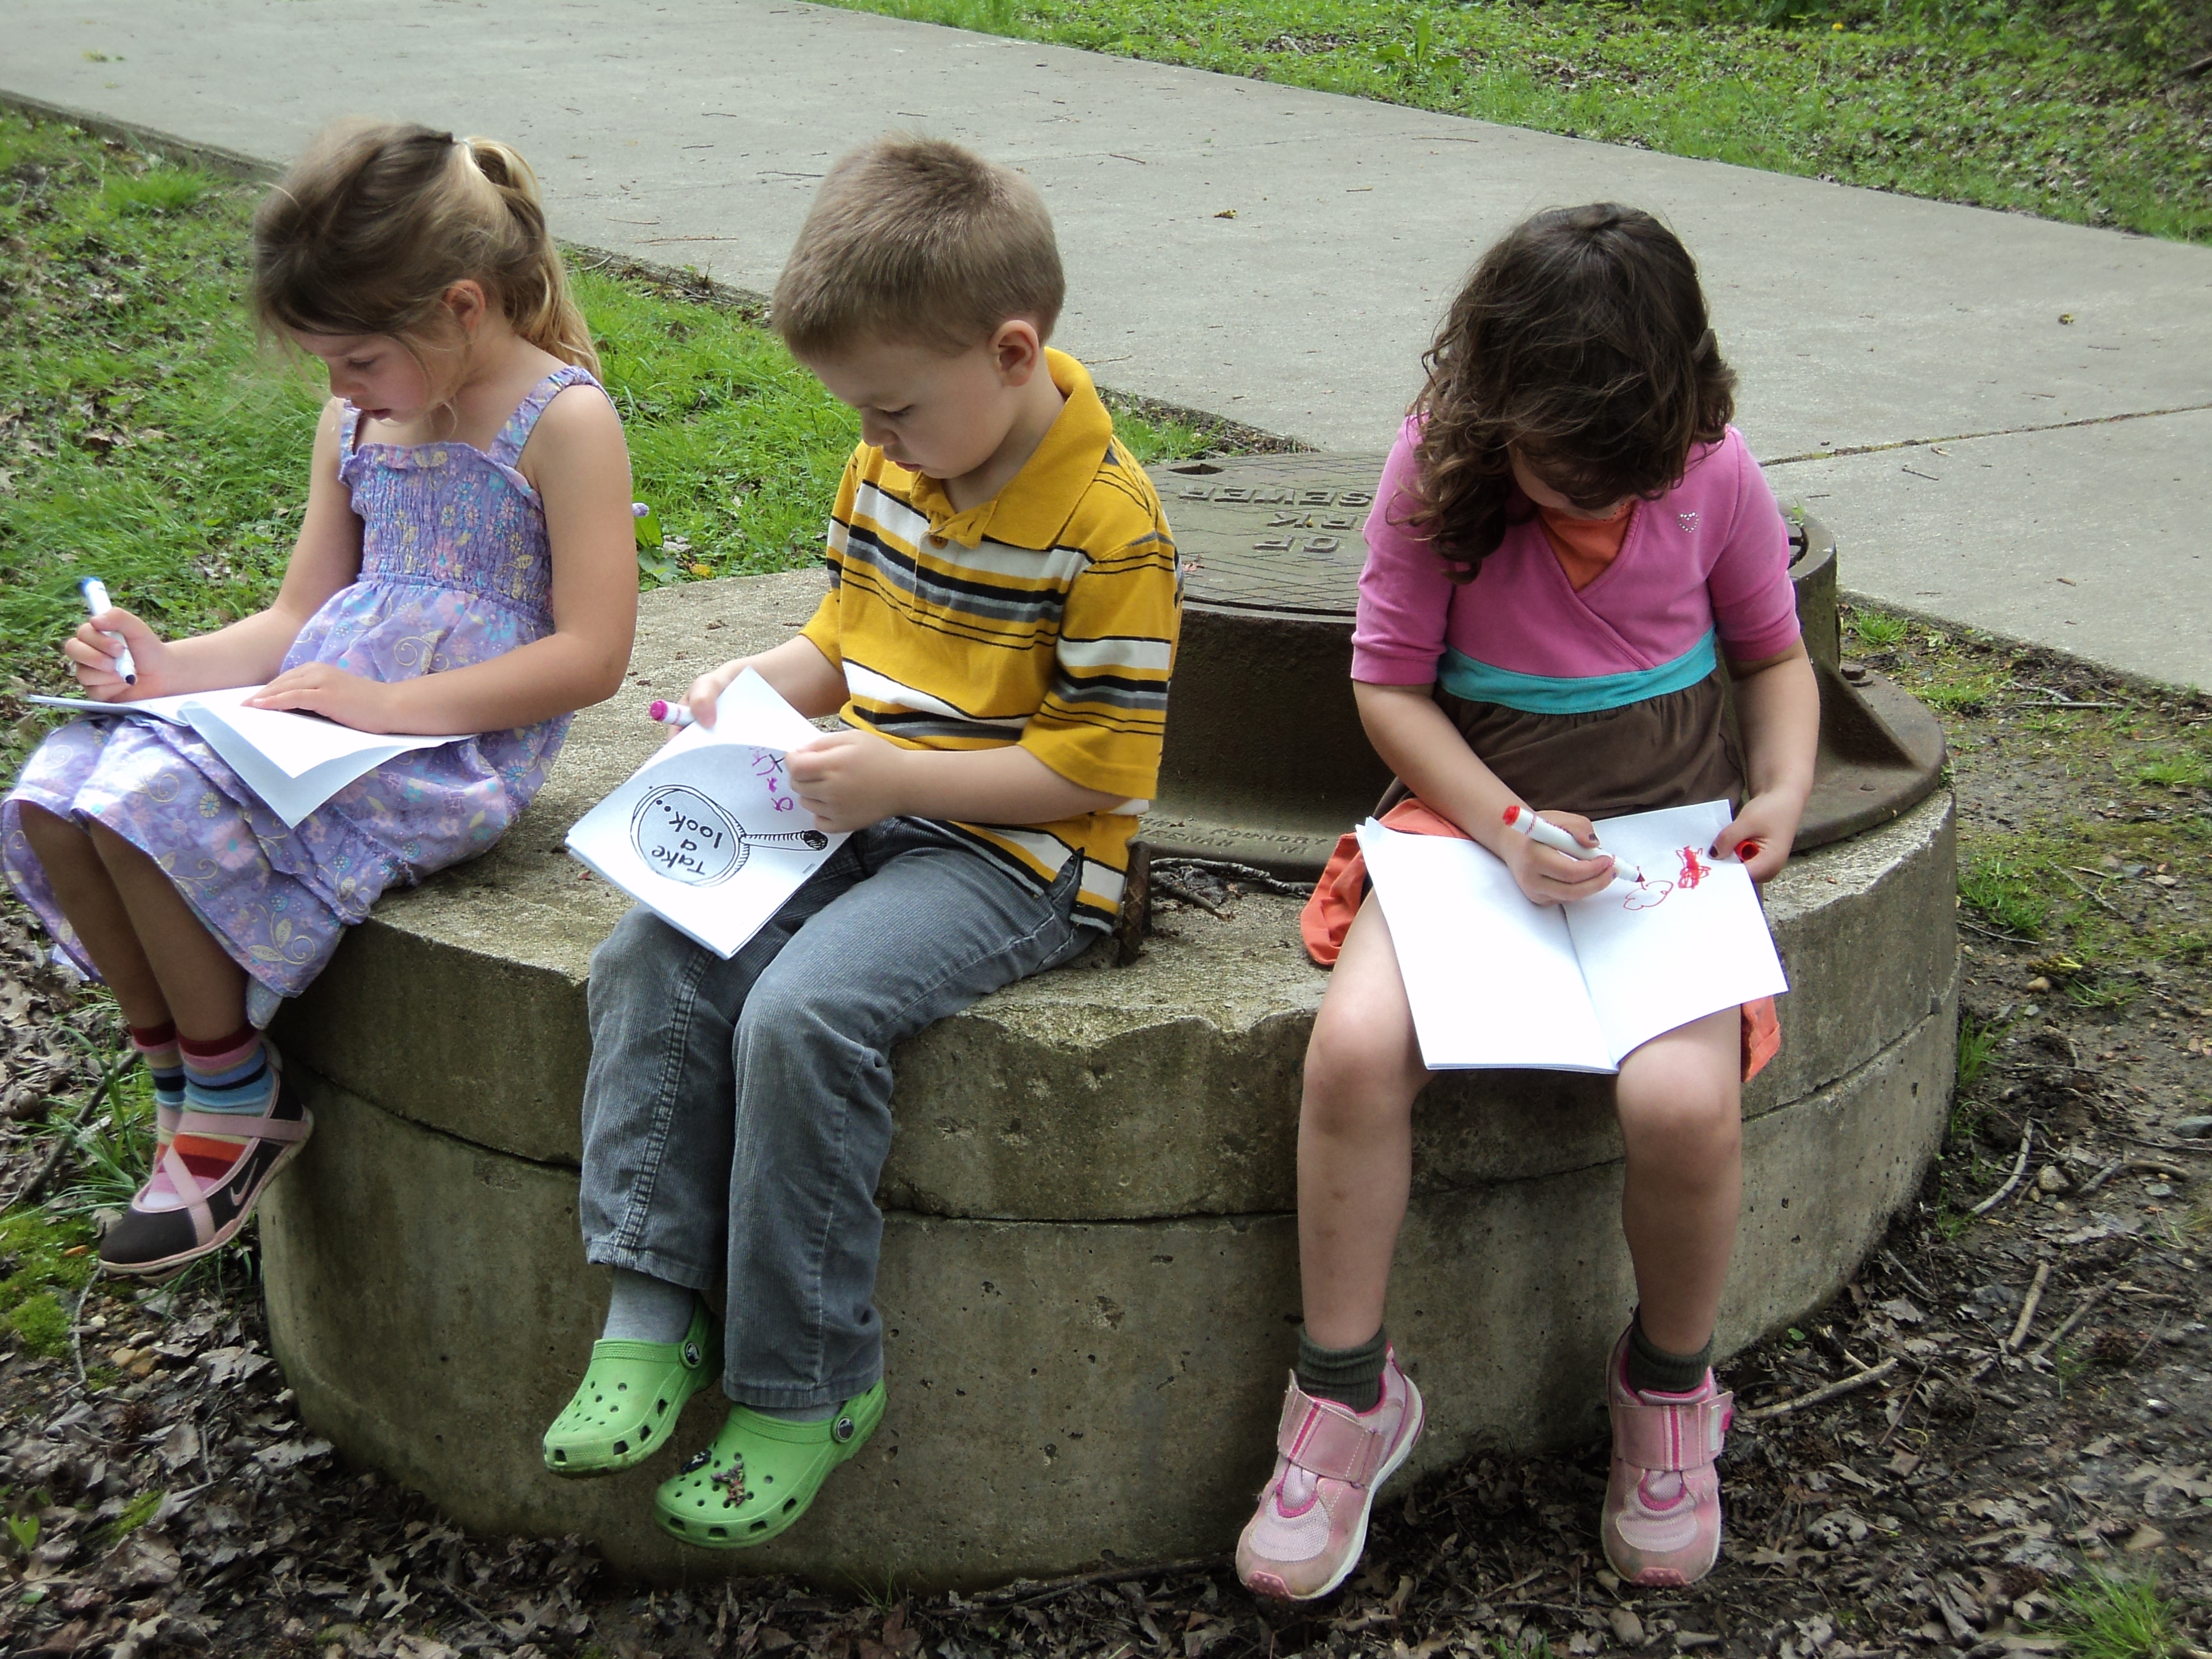 Children sitting outside coloring